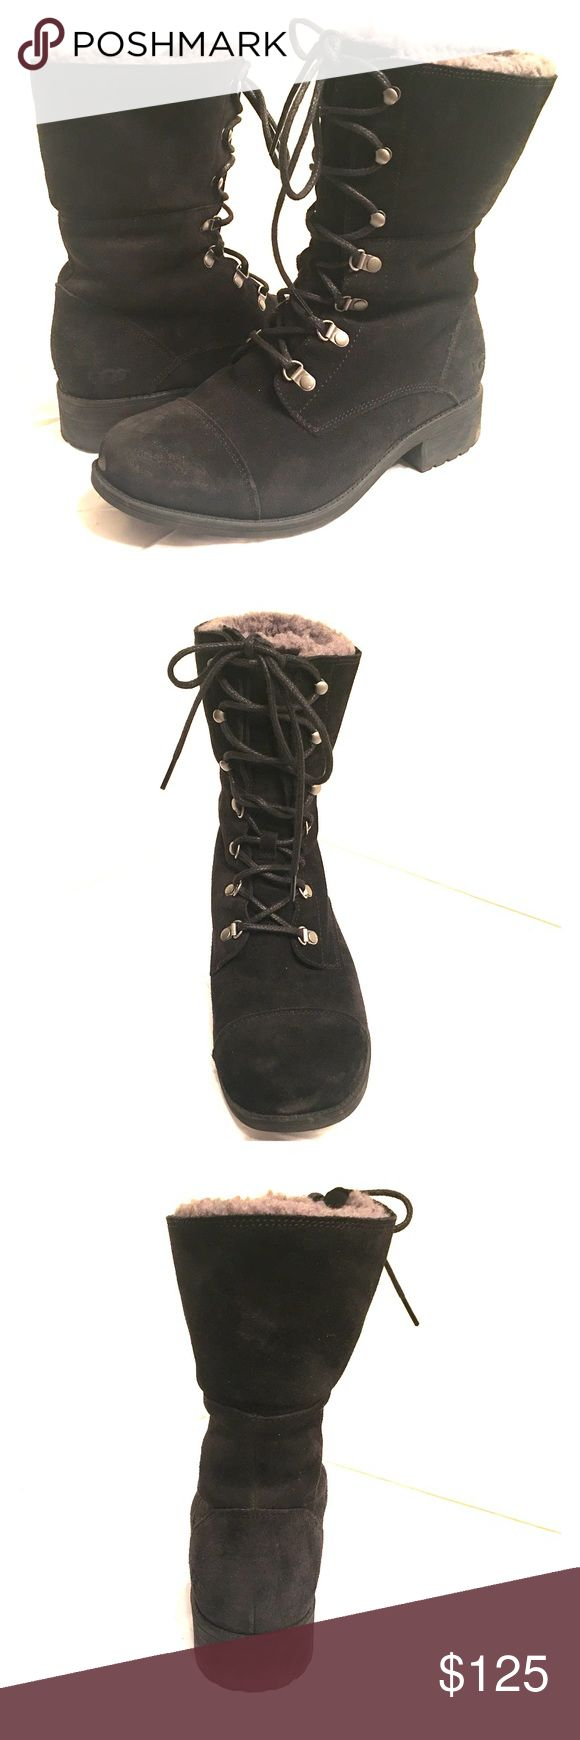 UGG black lace up boots UGG lace up combat boot style, wool insole, these boots are unbelievably warm and comfortable. Rarely worn, purchased in November 2016 in UK. UGG Shoes Lace Up Boots